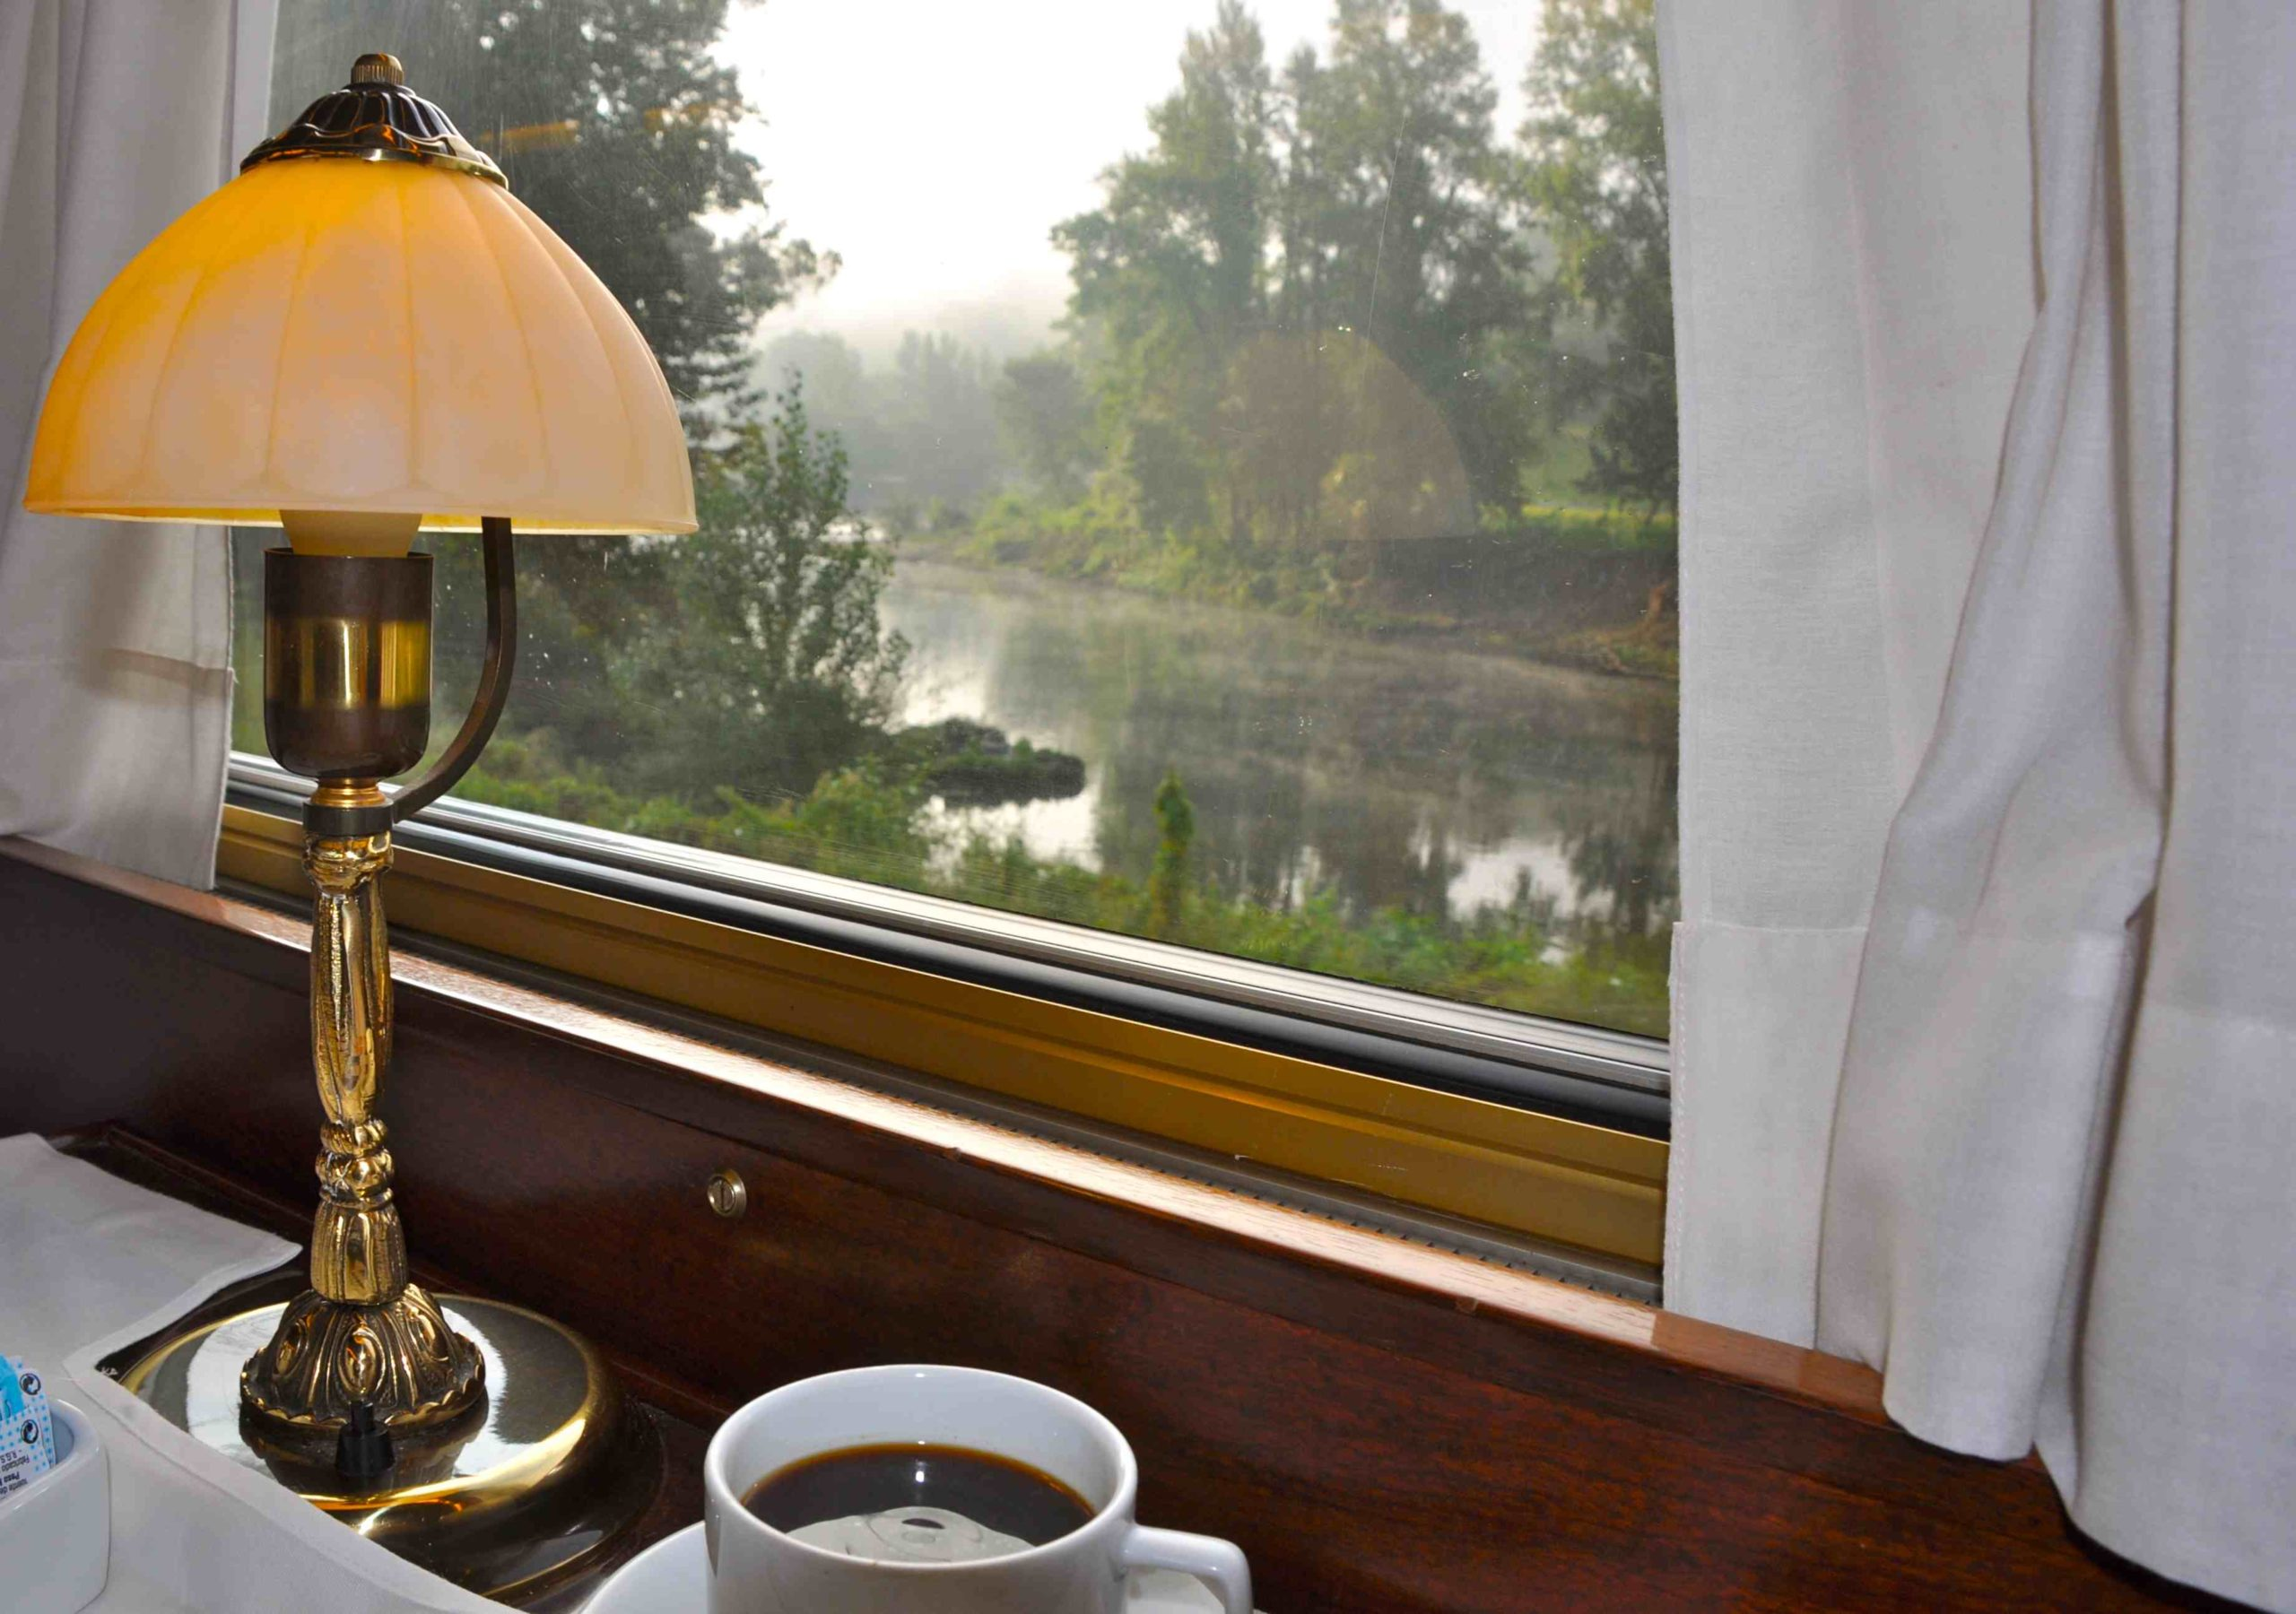 Dining car table lamp